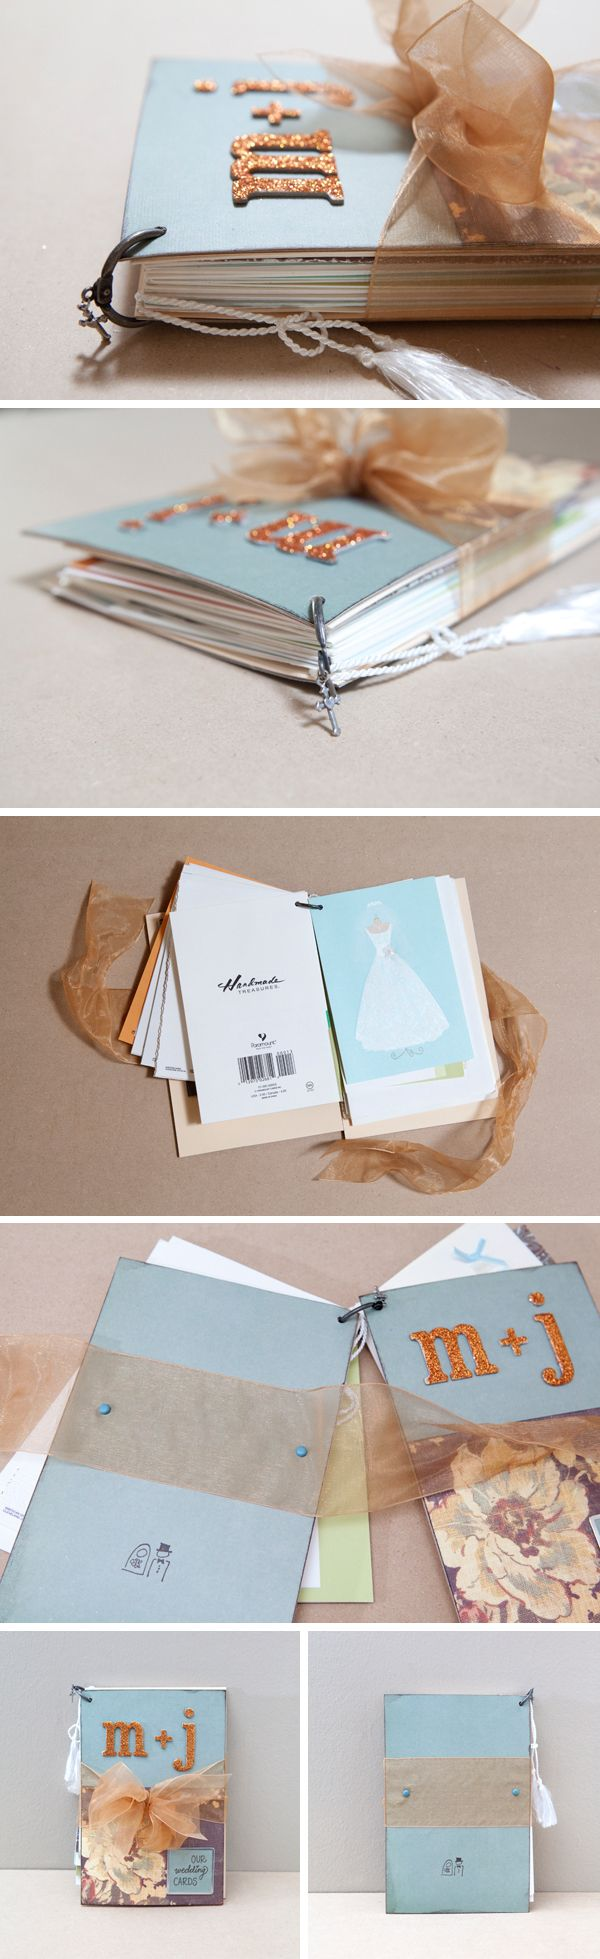 A great way to keep cards that are meaningful to you... I desperately need to do this!